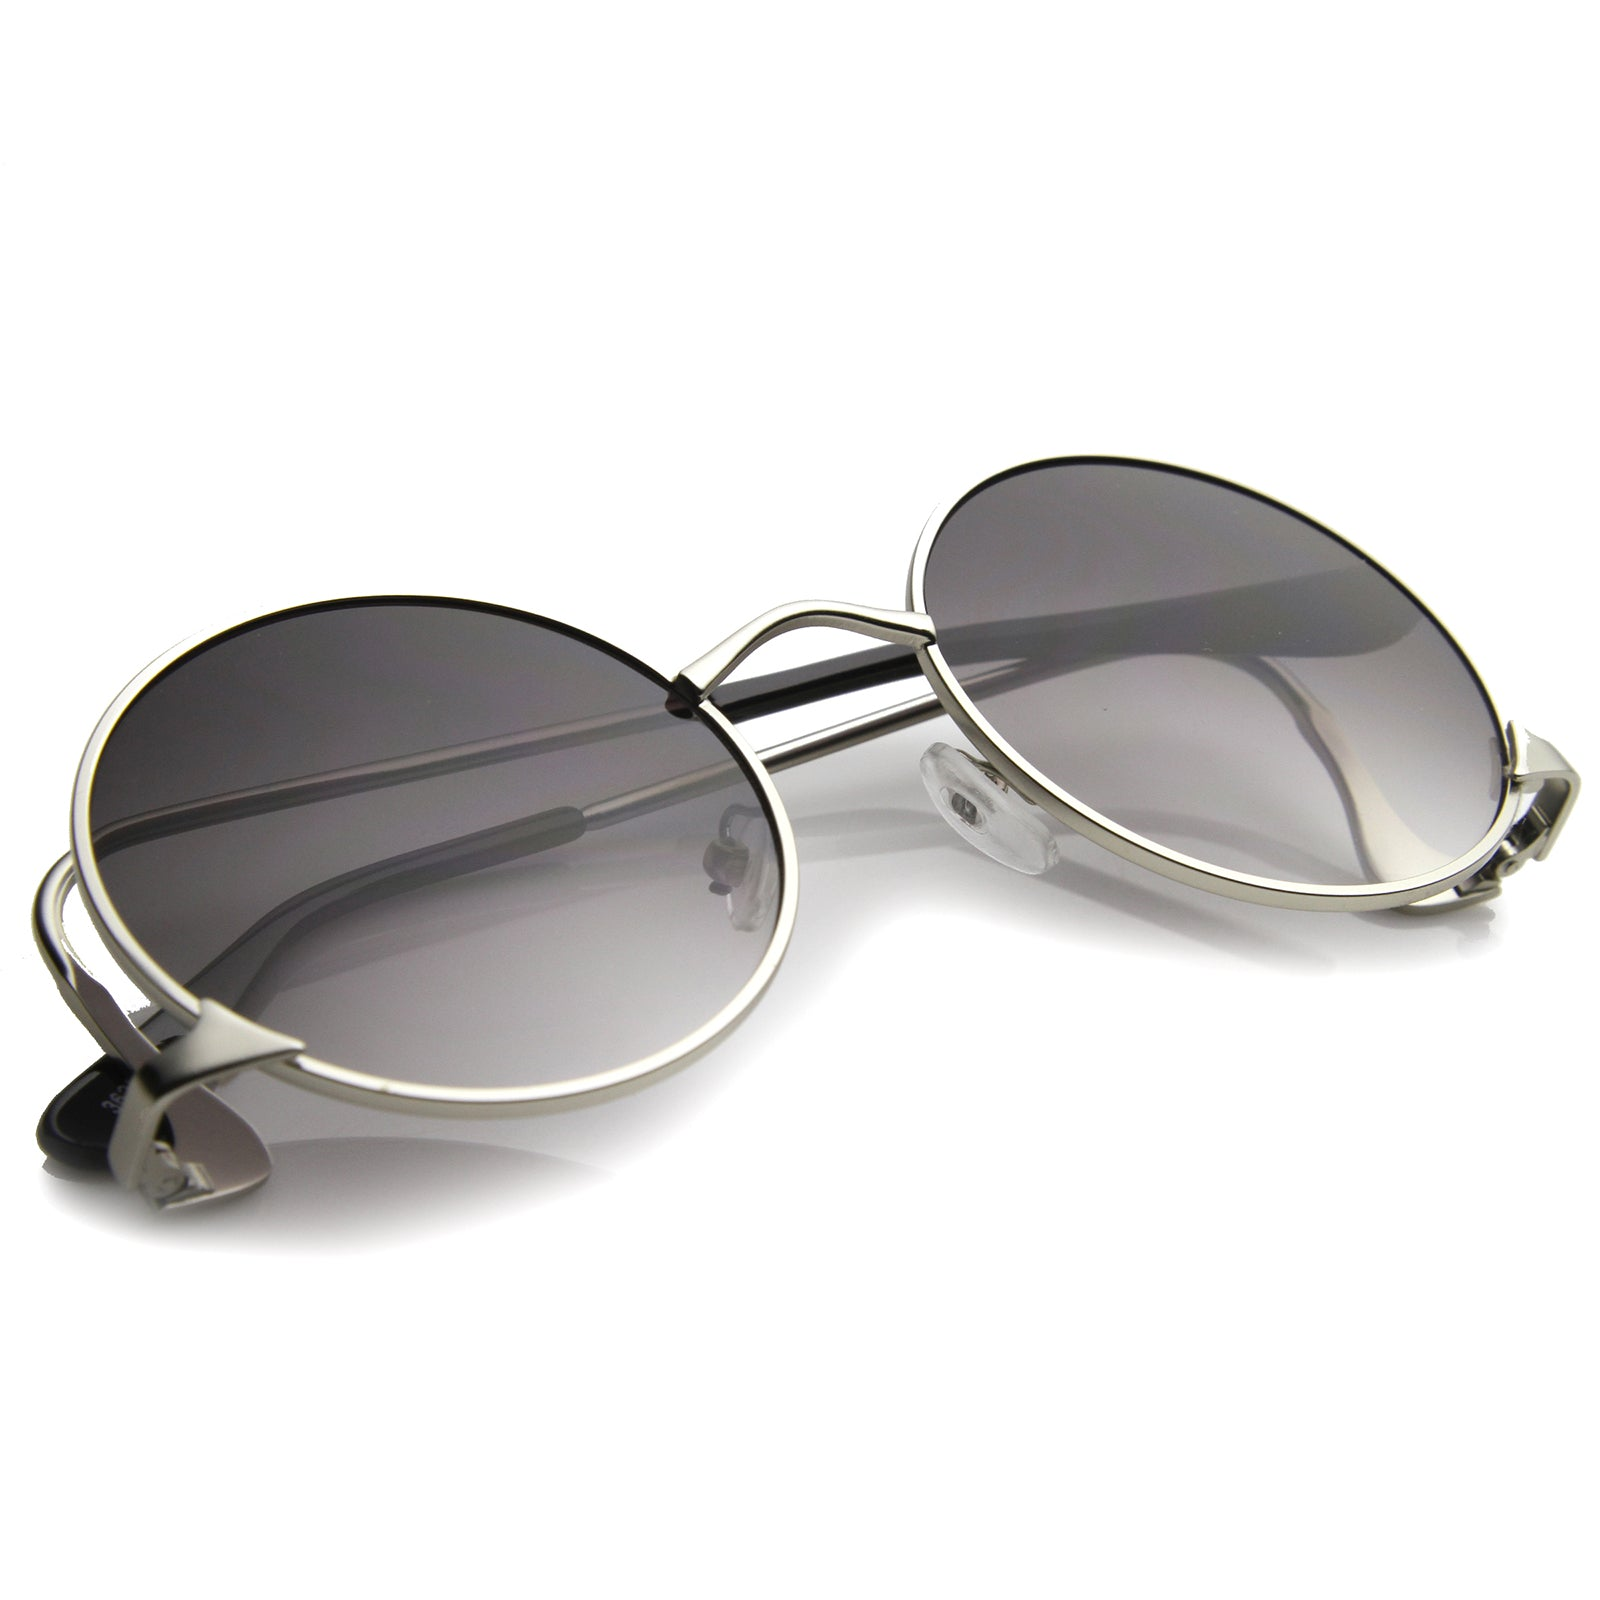 Mens Metal Round Sunglasses With UV400 Protected Gradient Lens - sunglass.la - 4